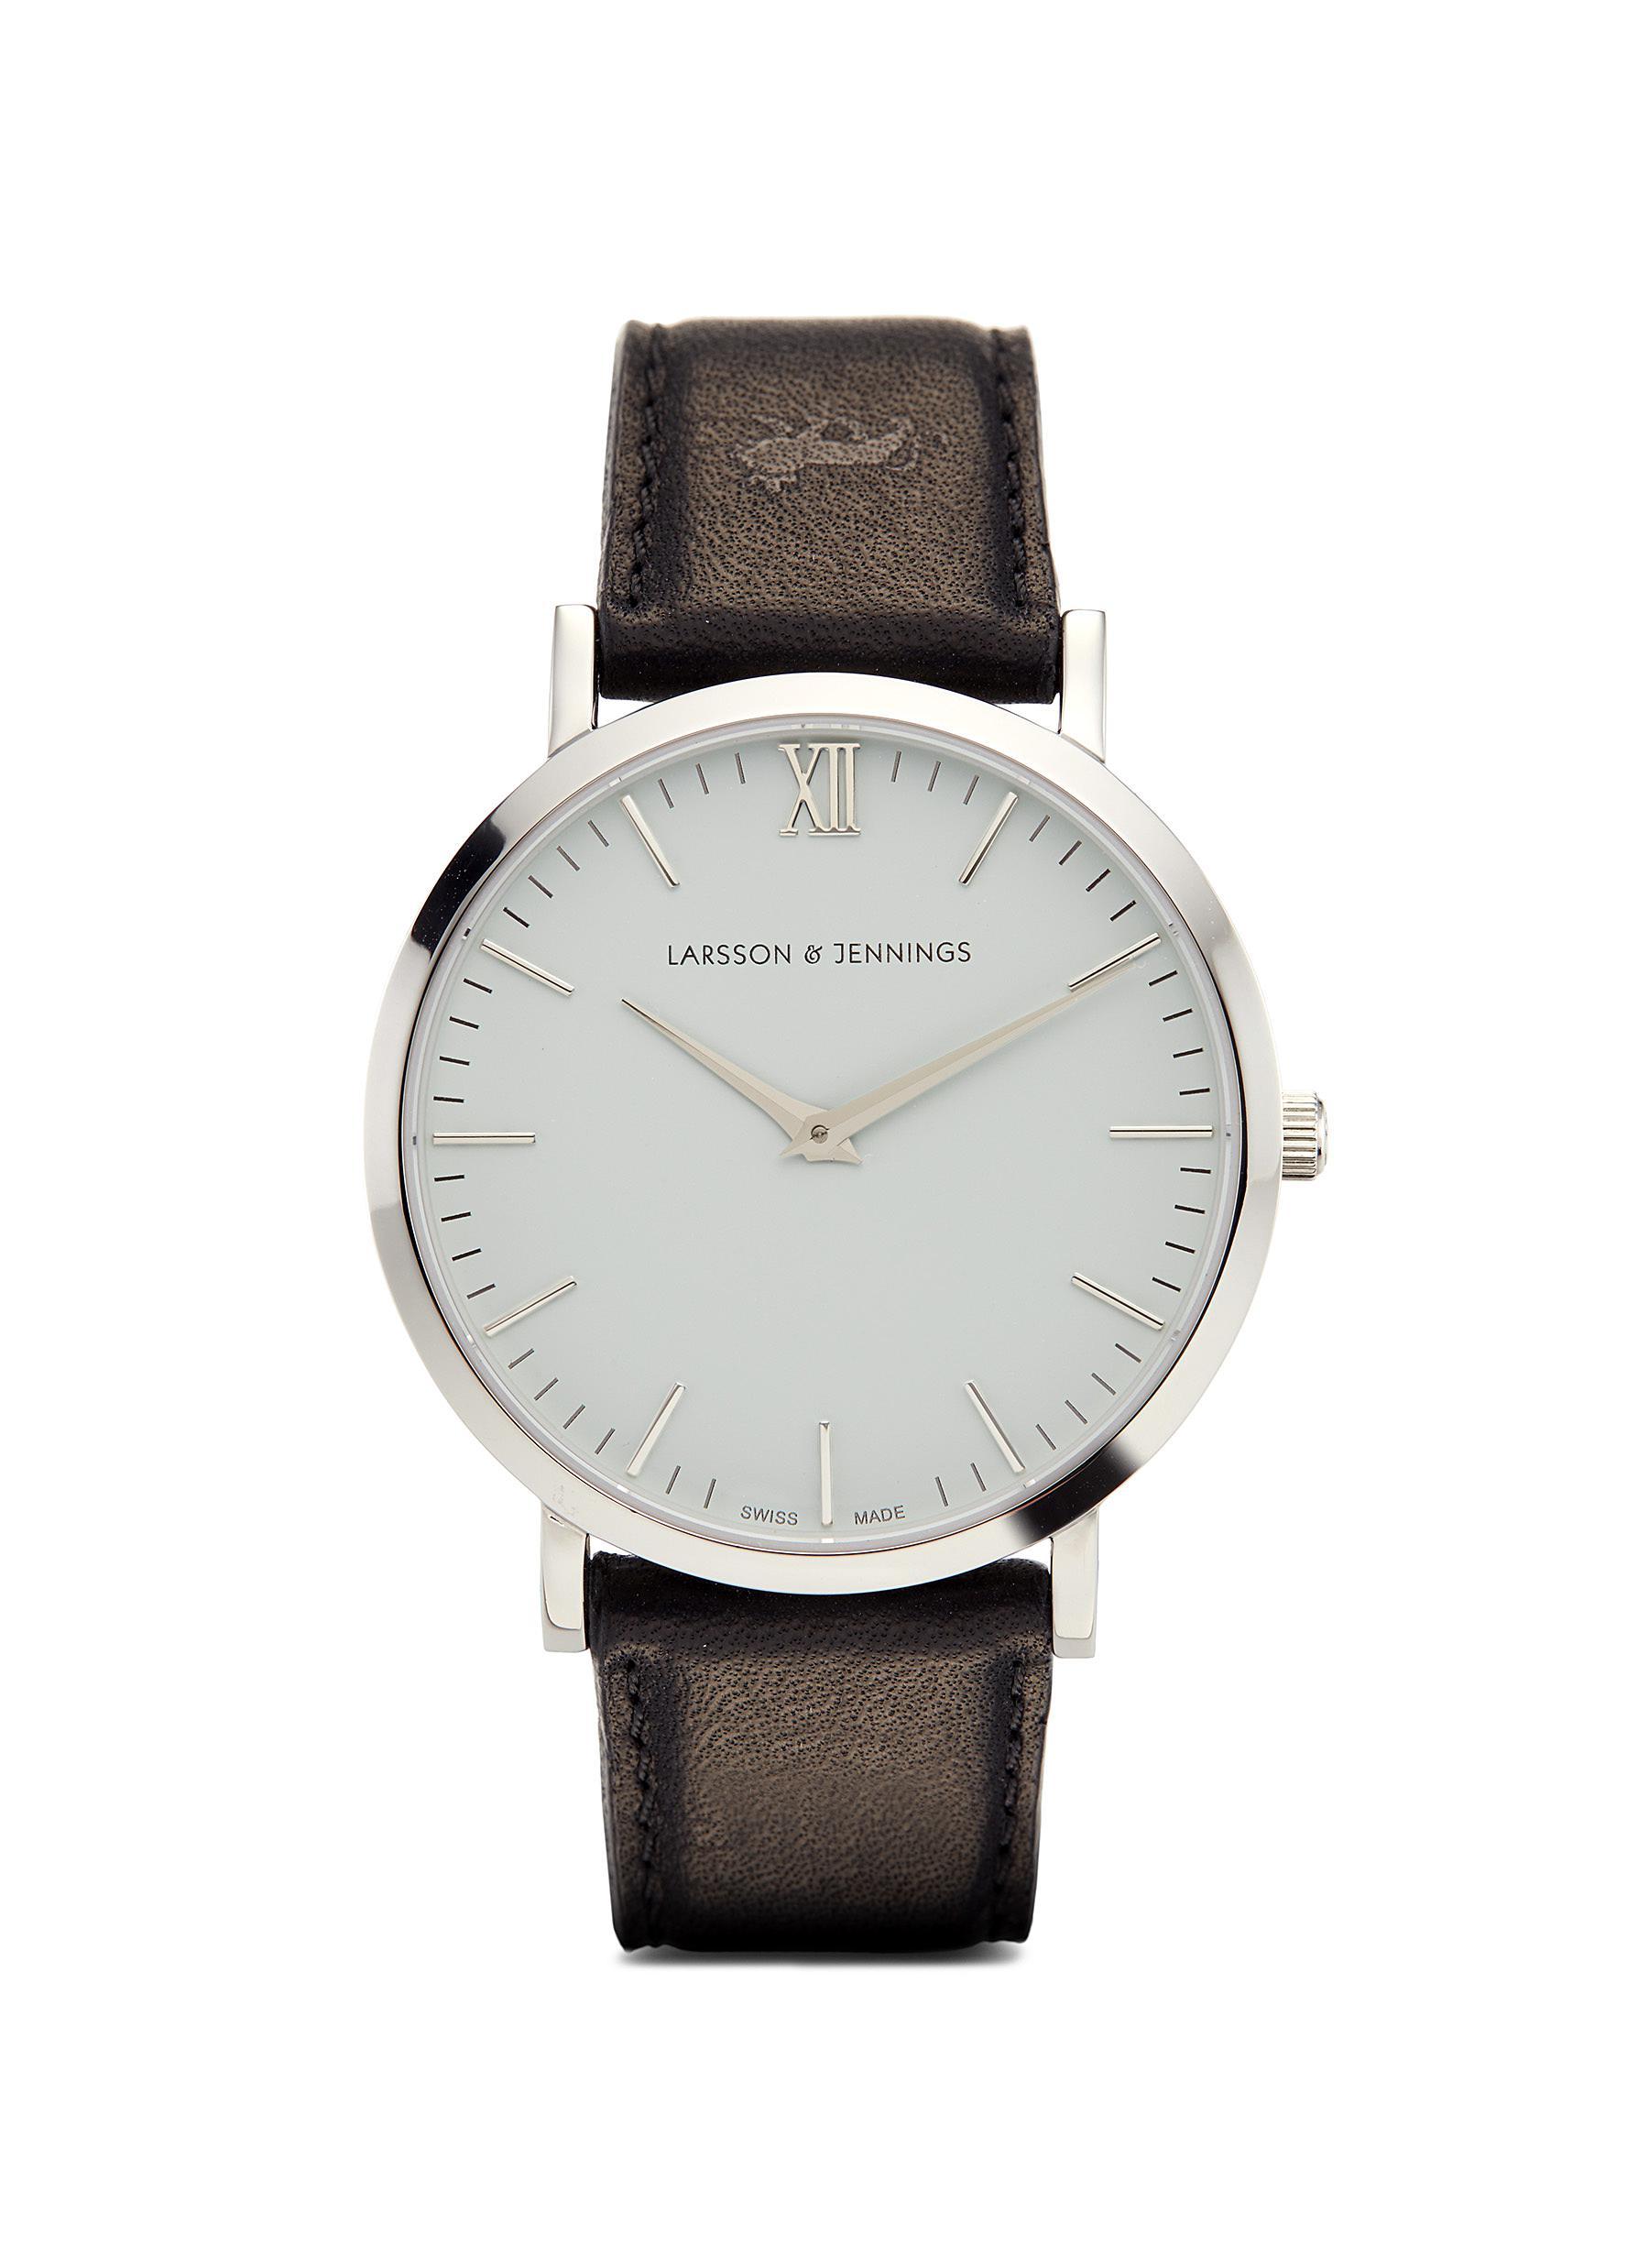 'Lugano 40mm' leather strap watch